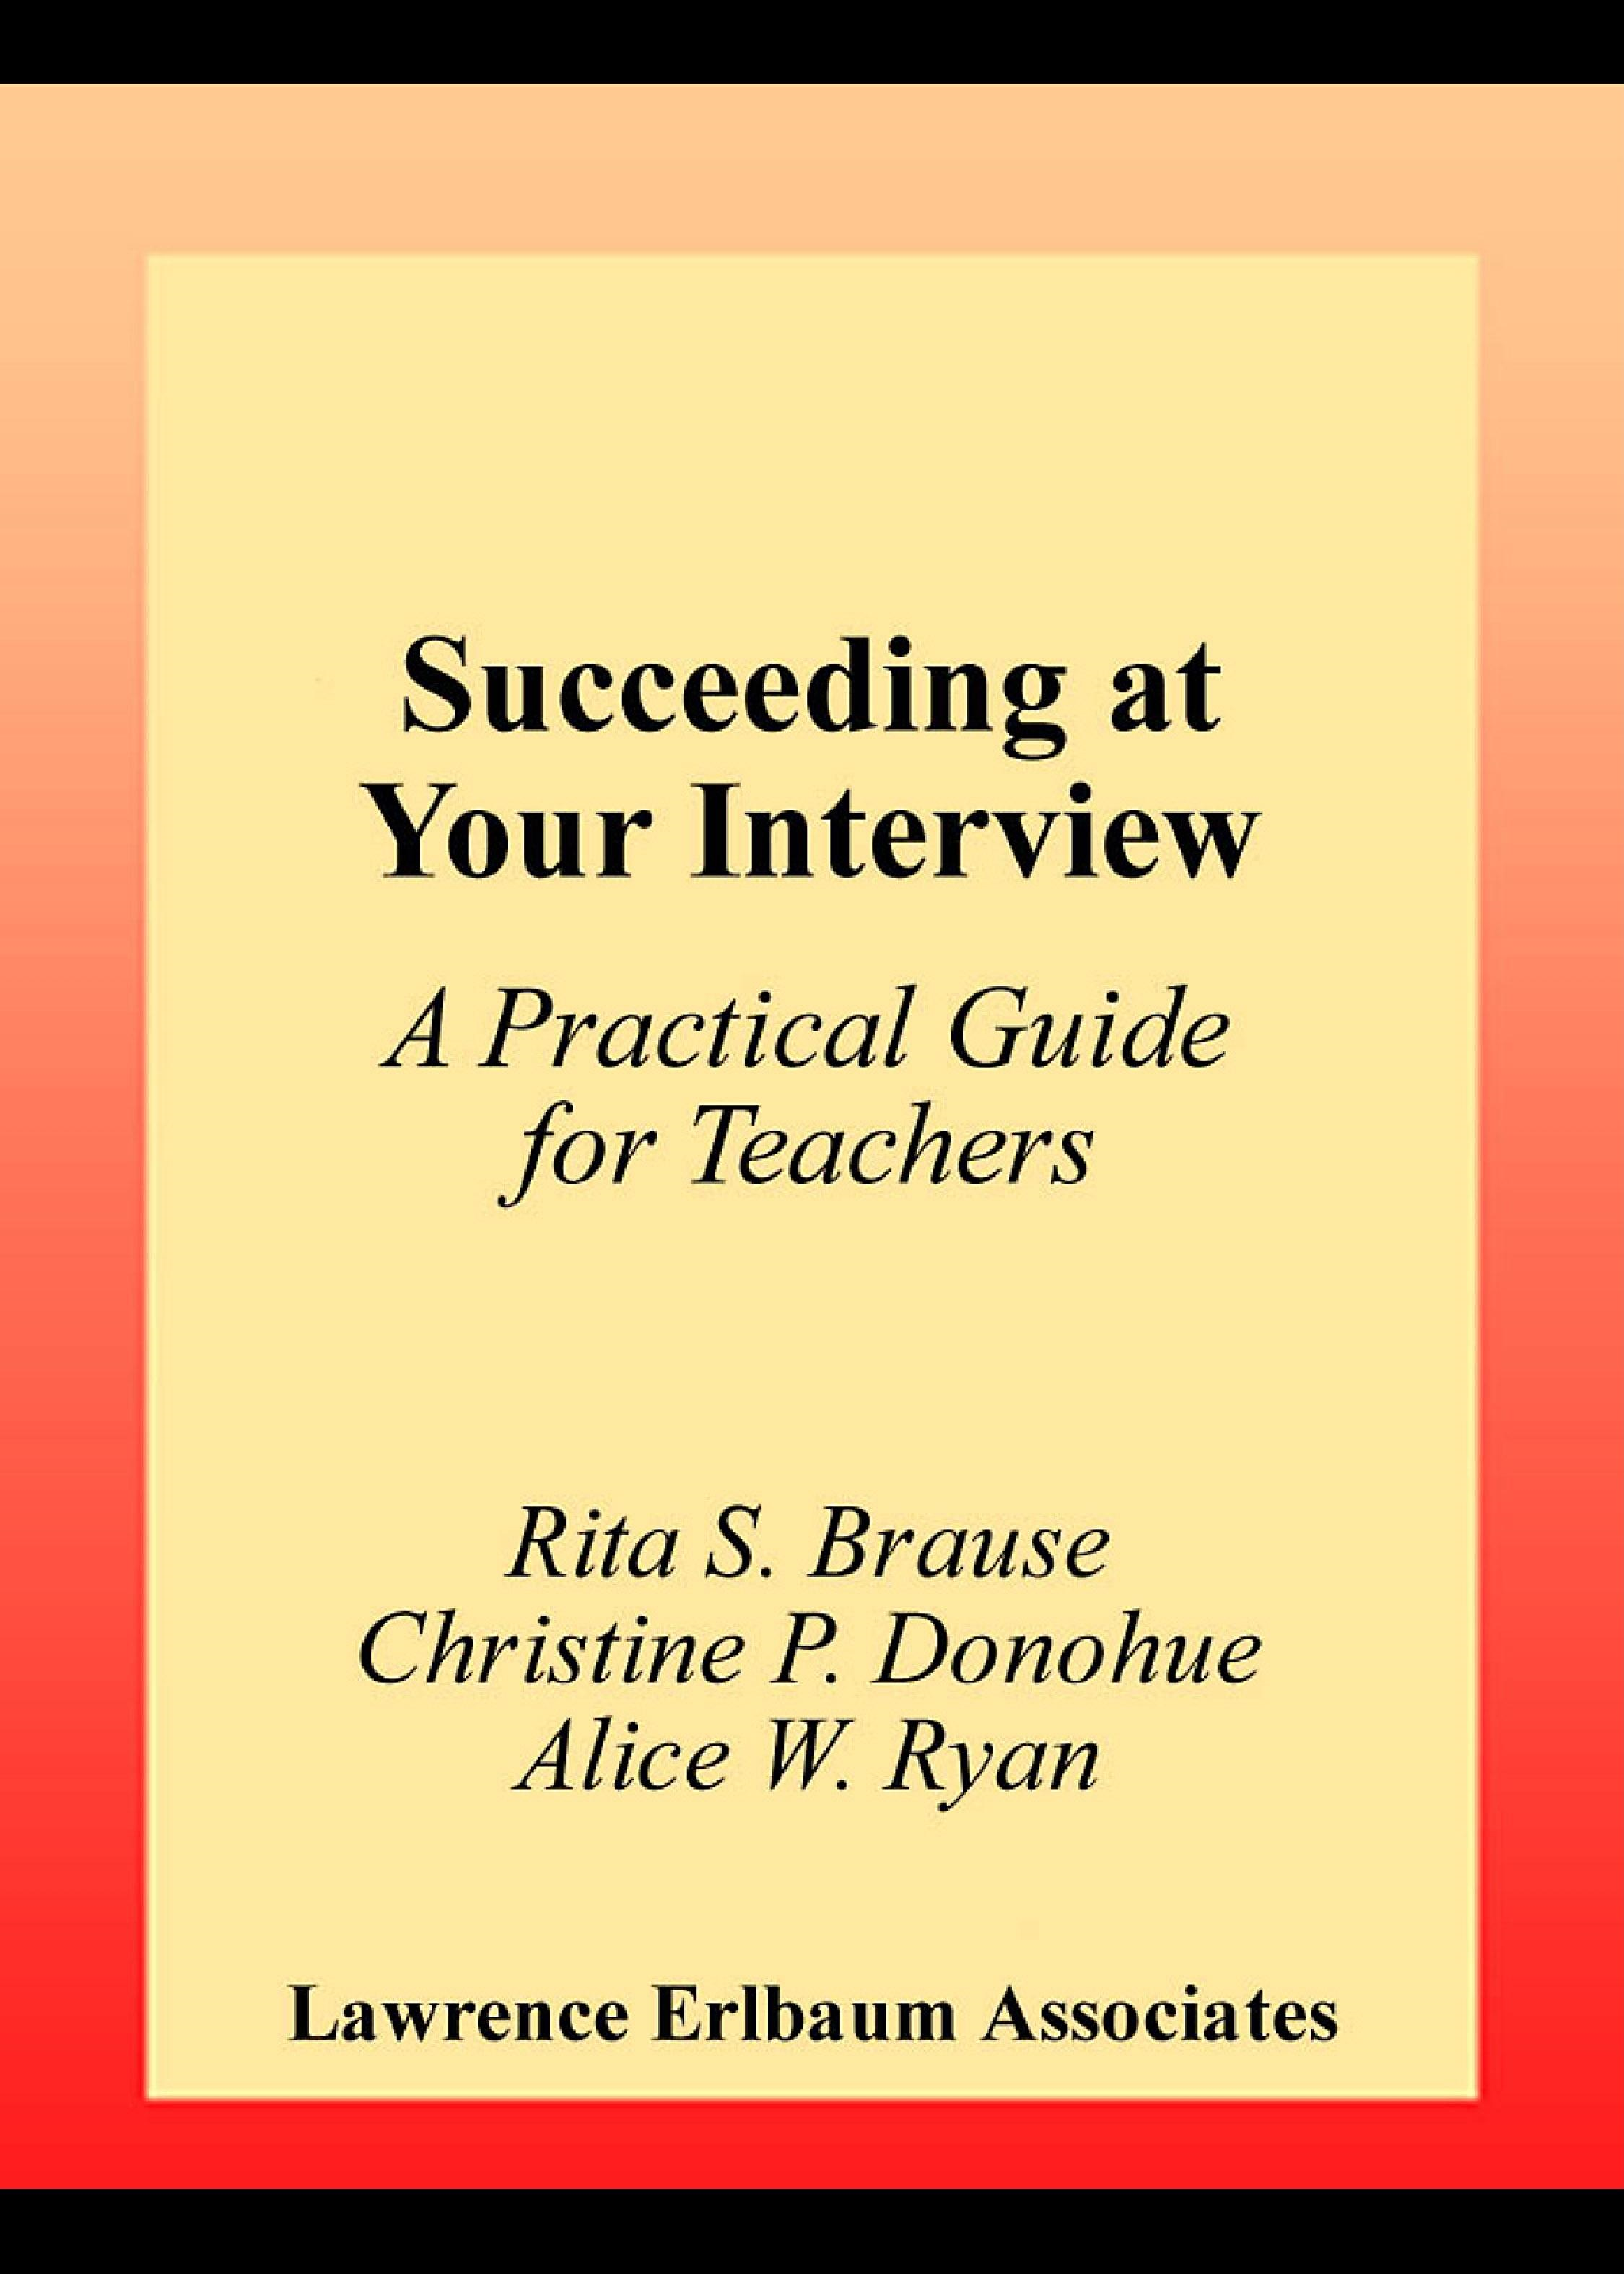 Succeeding at Your Interview: A Practical Guide for Teachers